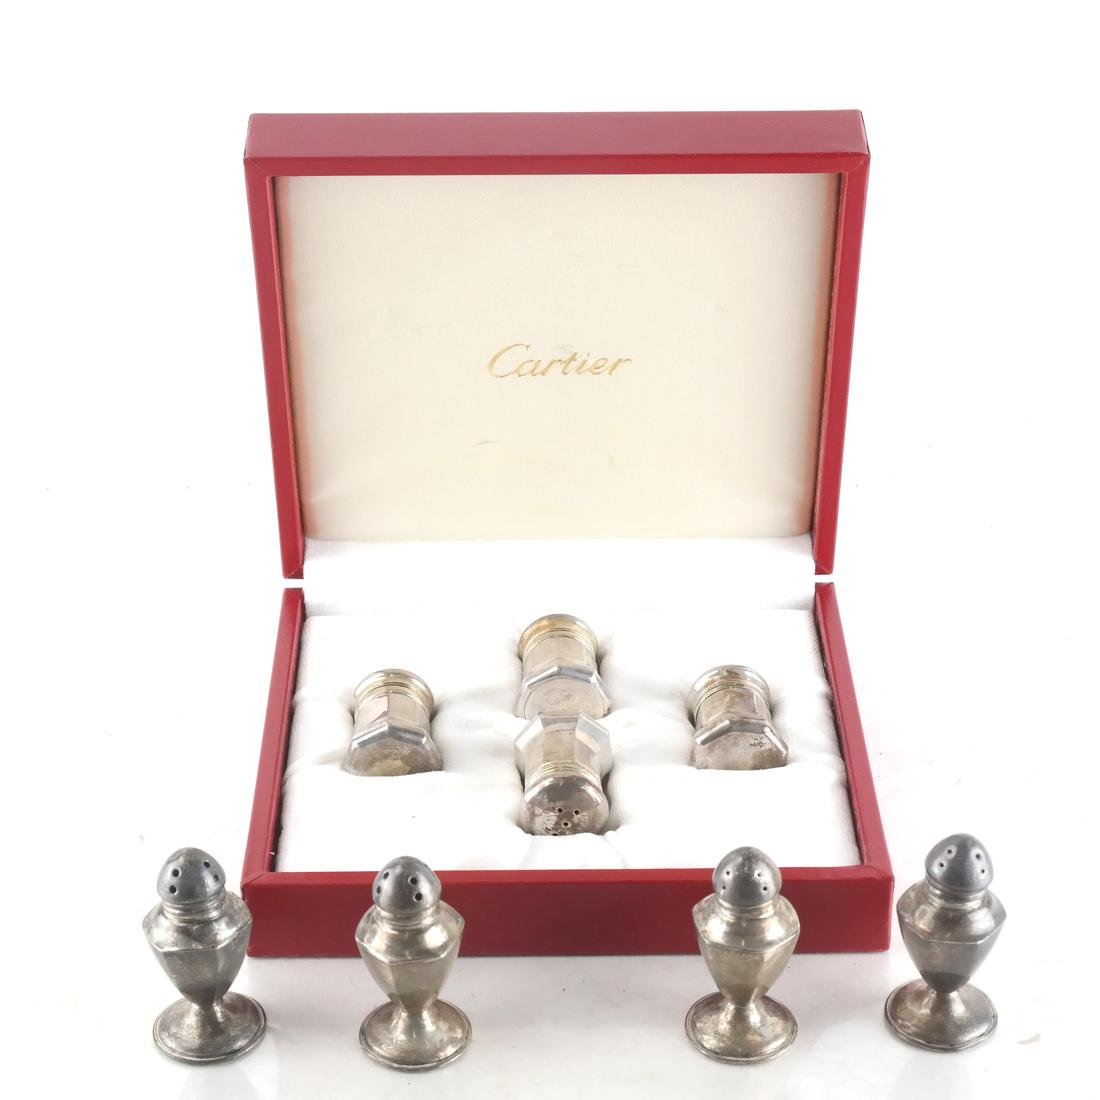 8 Sterling Silver Casters - Cartier, Others